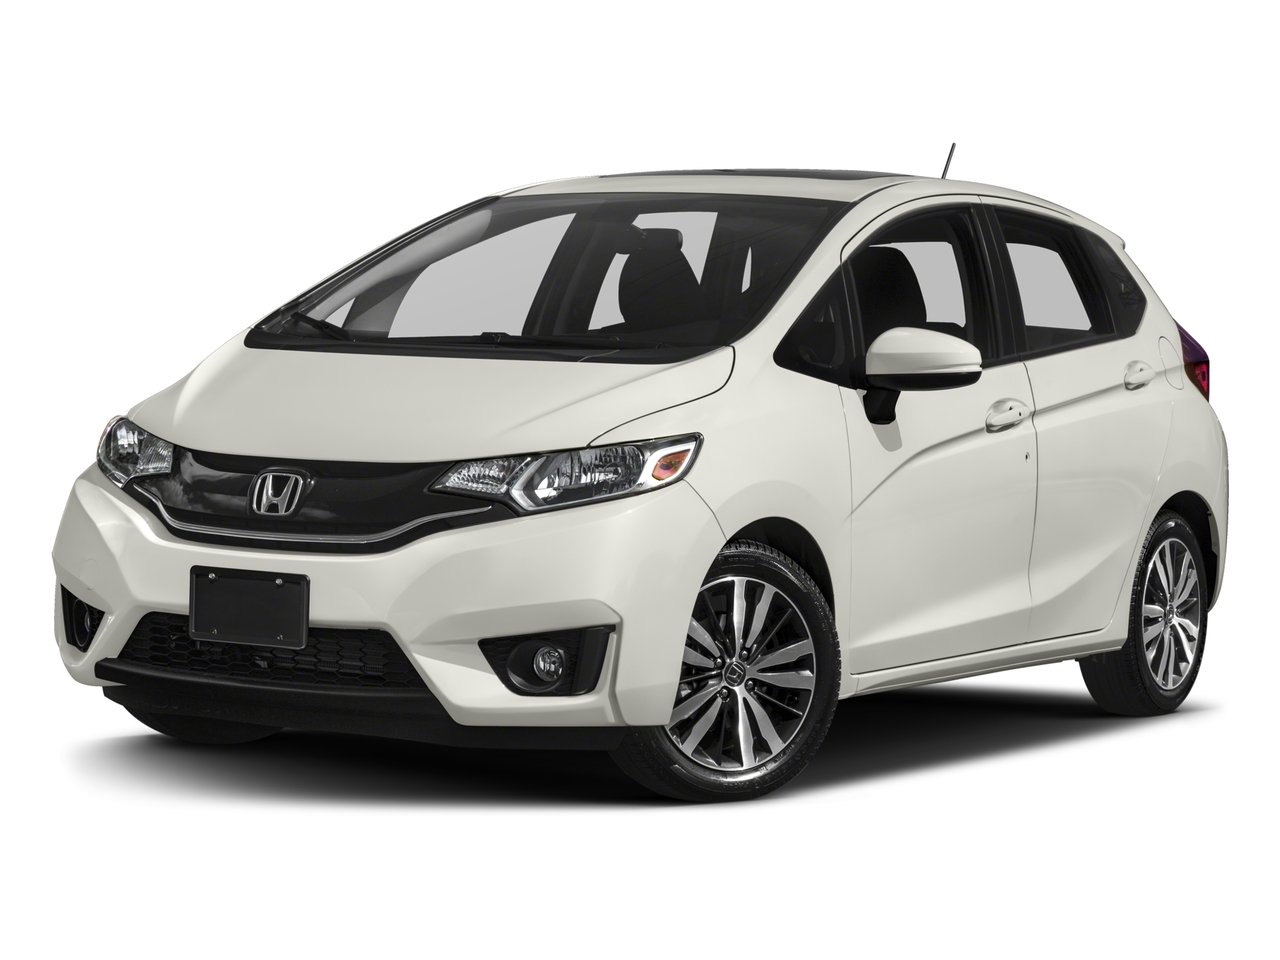 2017 Honda Fit - Fort Smith, AR